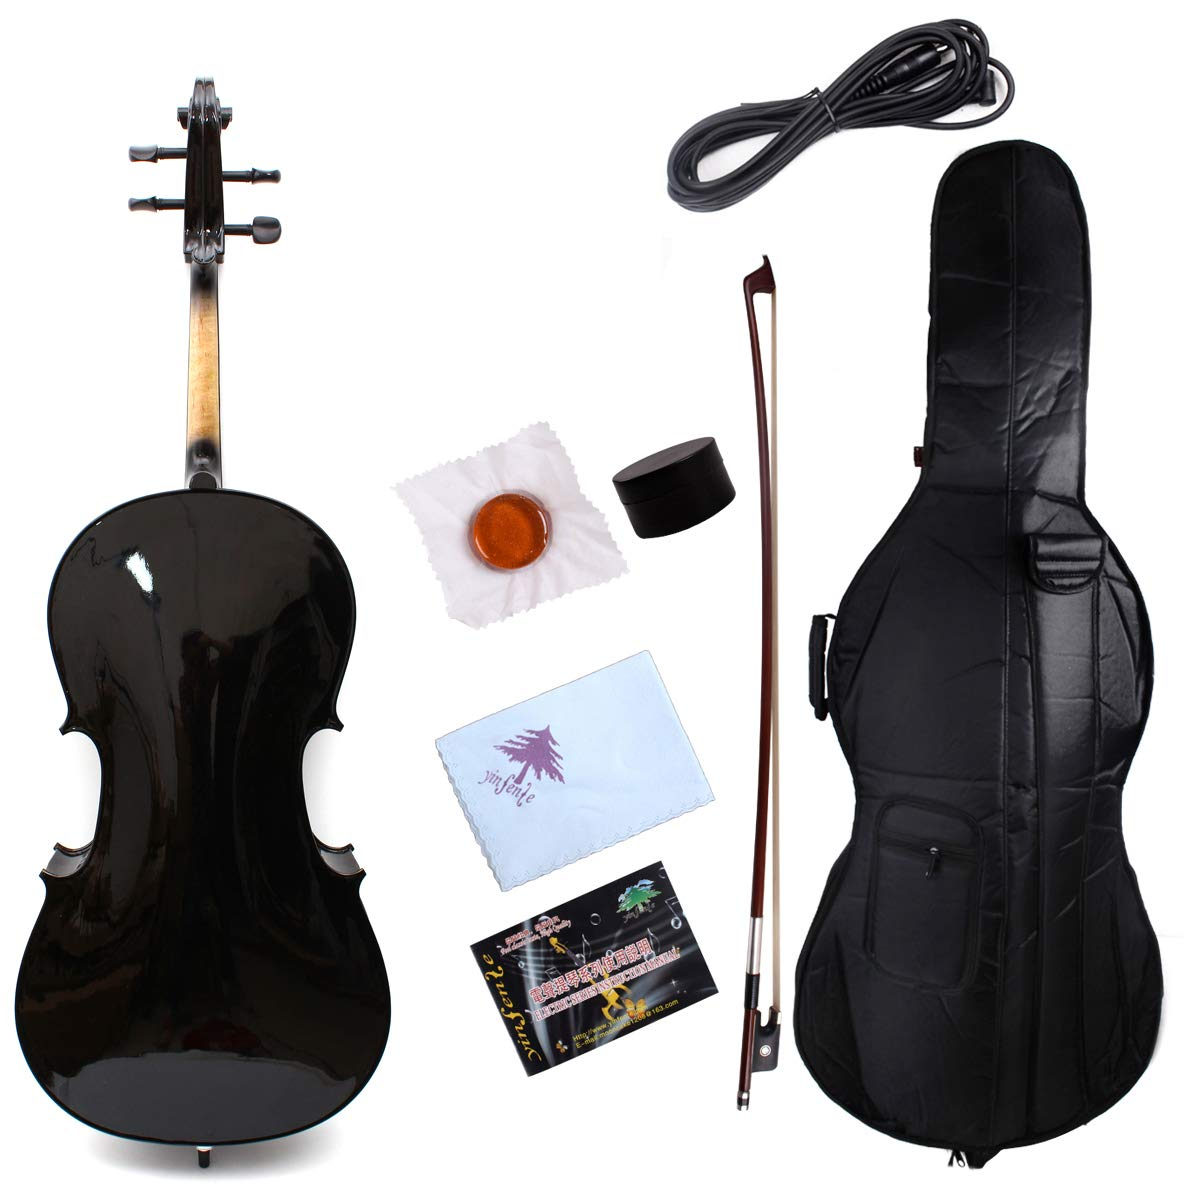 Yinfente Electric Acoustic Cello 4/4 Solid Maple Spruce wood Ebony Fittings Sweet Sound With Cello Bag Bow (Black) by yinfente